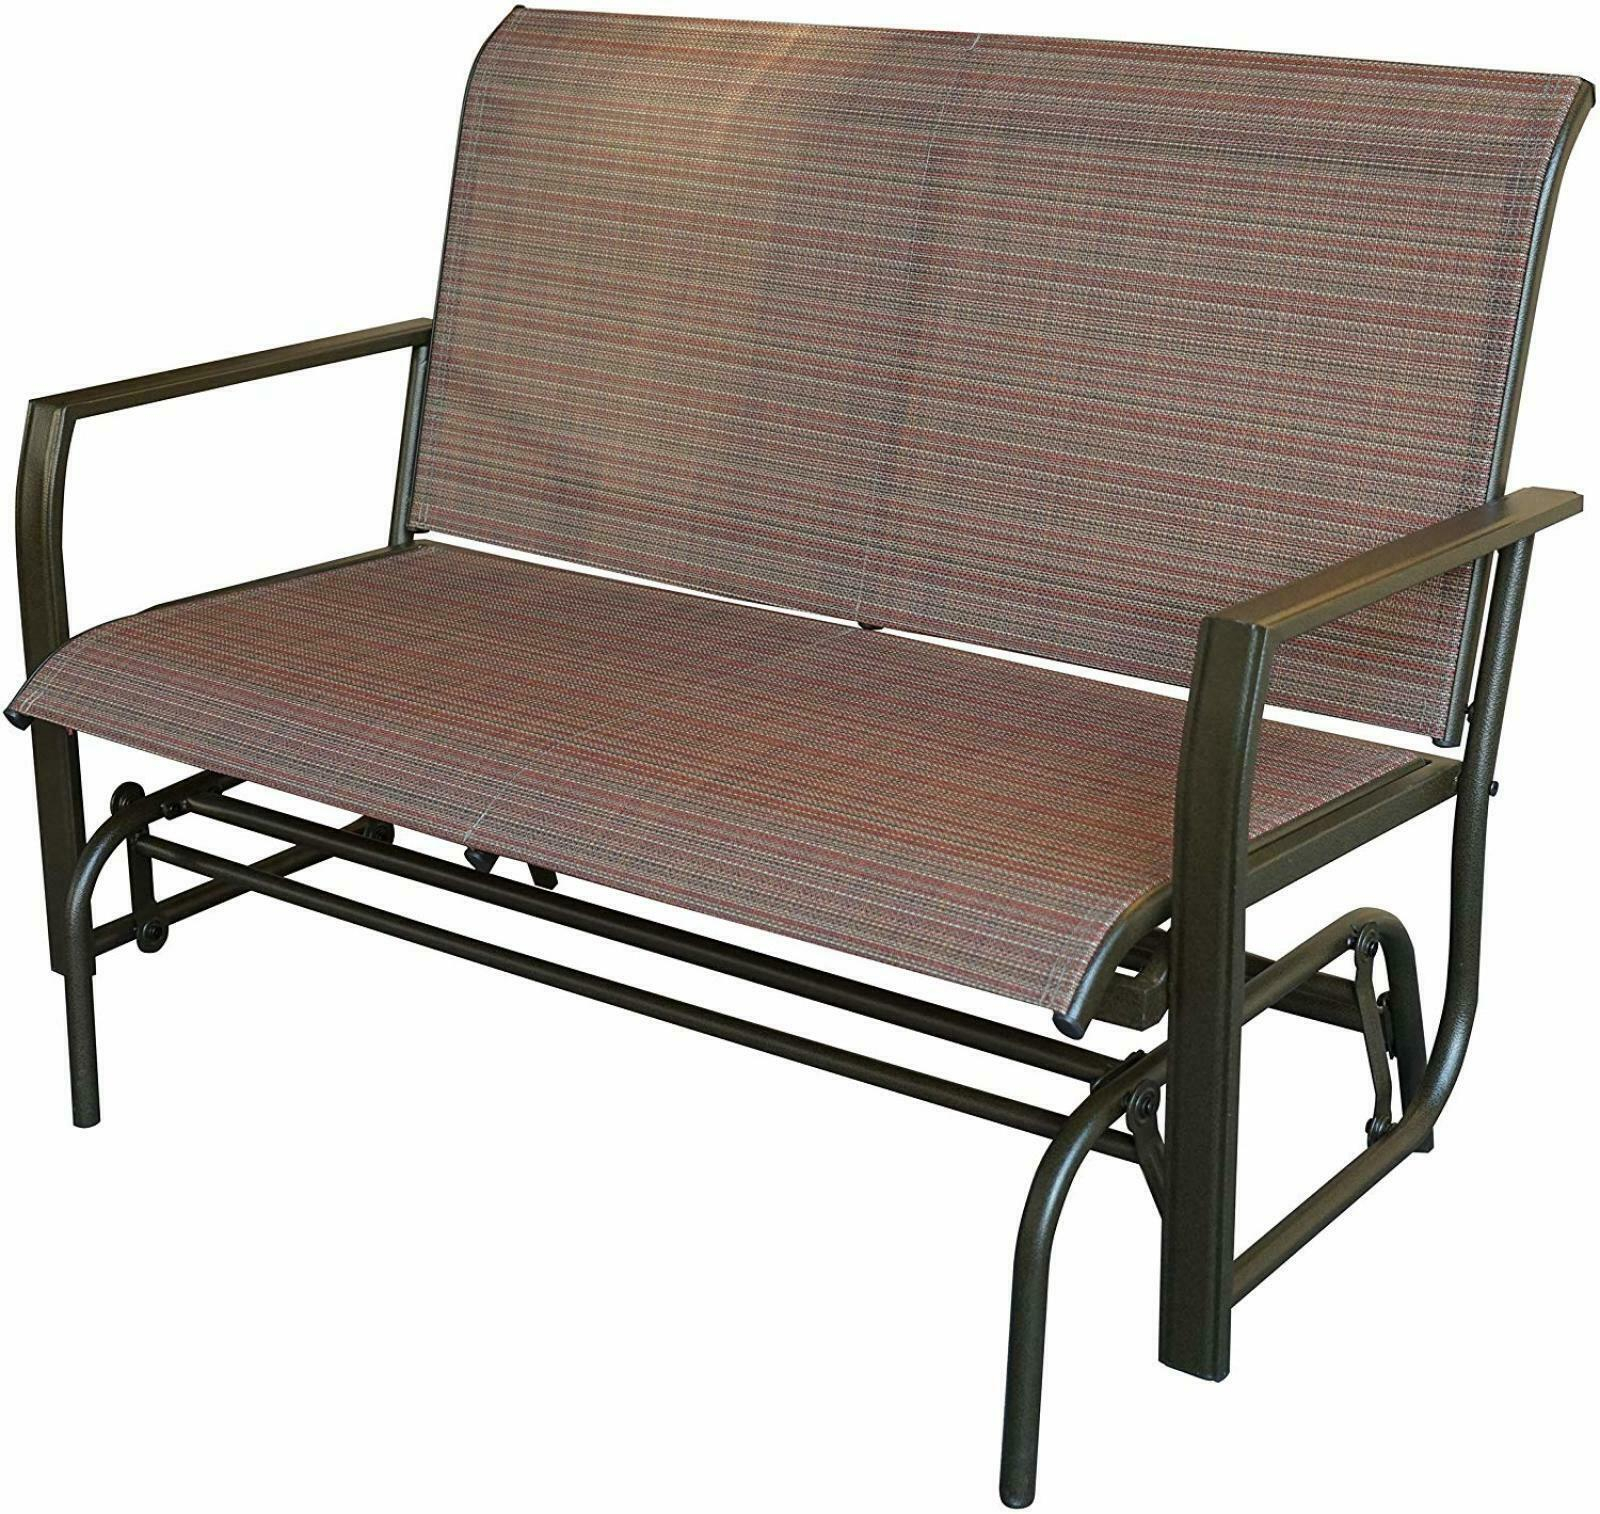 Love Seat Swing Bench For Patio Textile And Sturdy Frame Glider Rocker Tan Brown Within Rocking Love Seats Glider Swing Benches With Sturdy Frame (View 3 of 25)